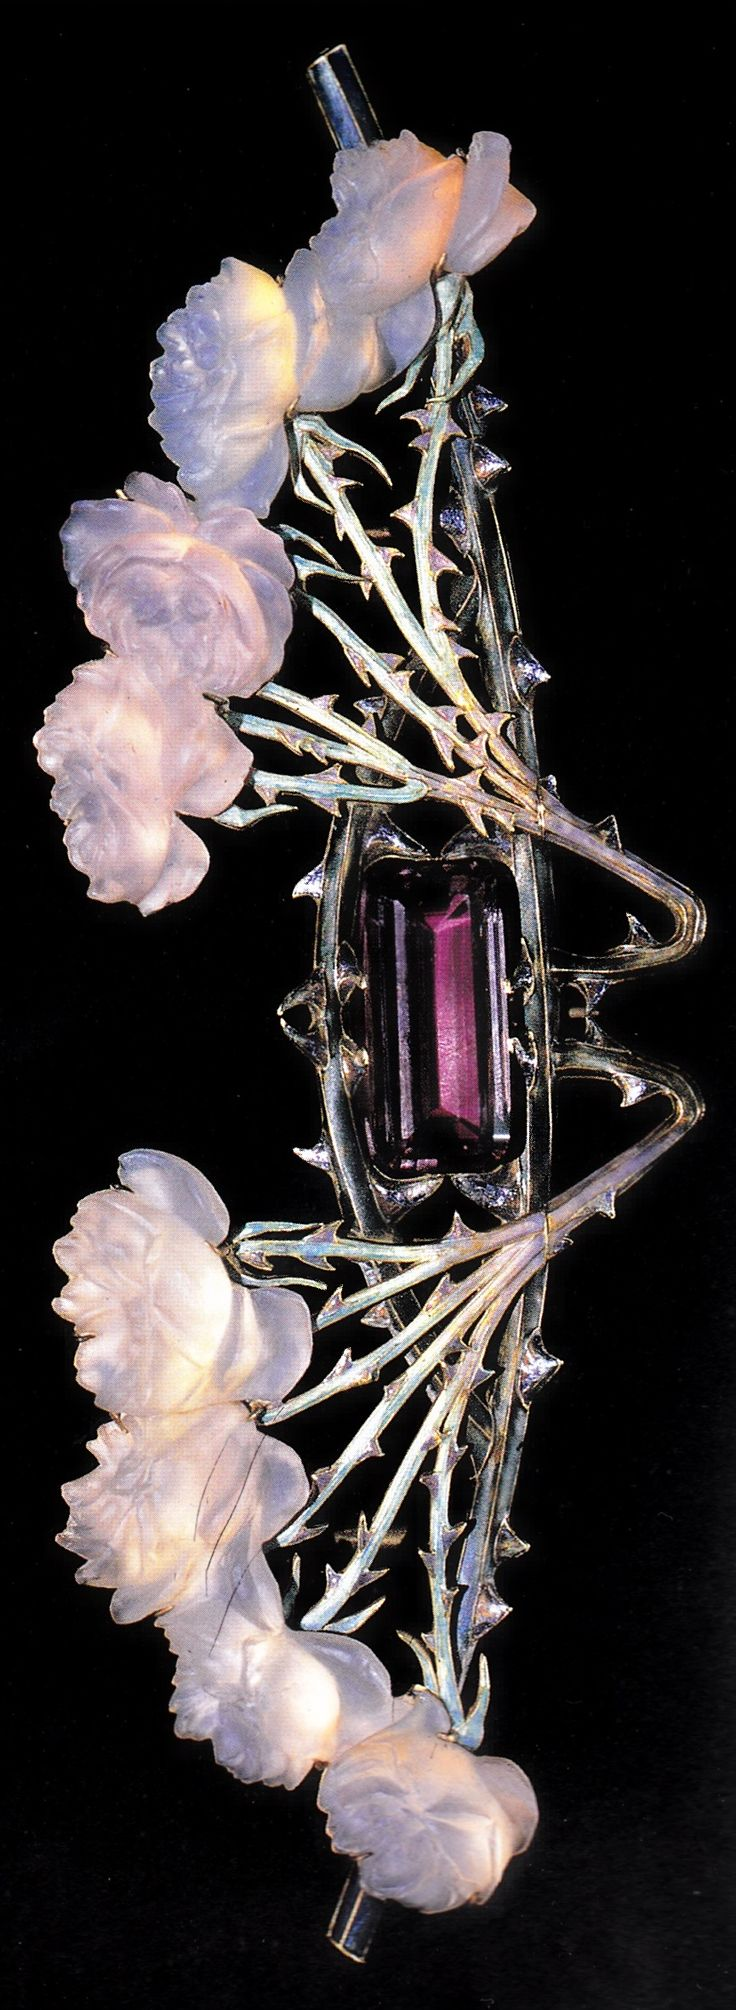 An Art Nouveau 'Rose Stems' brooch-pectoral, by René Lalique, 1904-05. Gold, glass, enamel and amethyst. Source: Cartier, 1899-1949: The Journey of a Style.